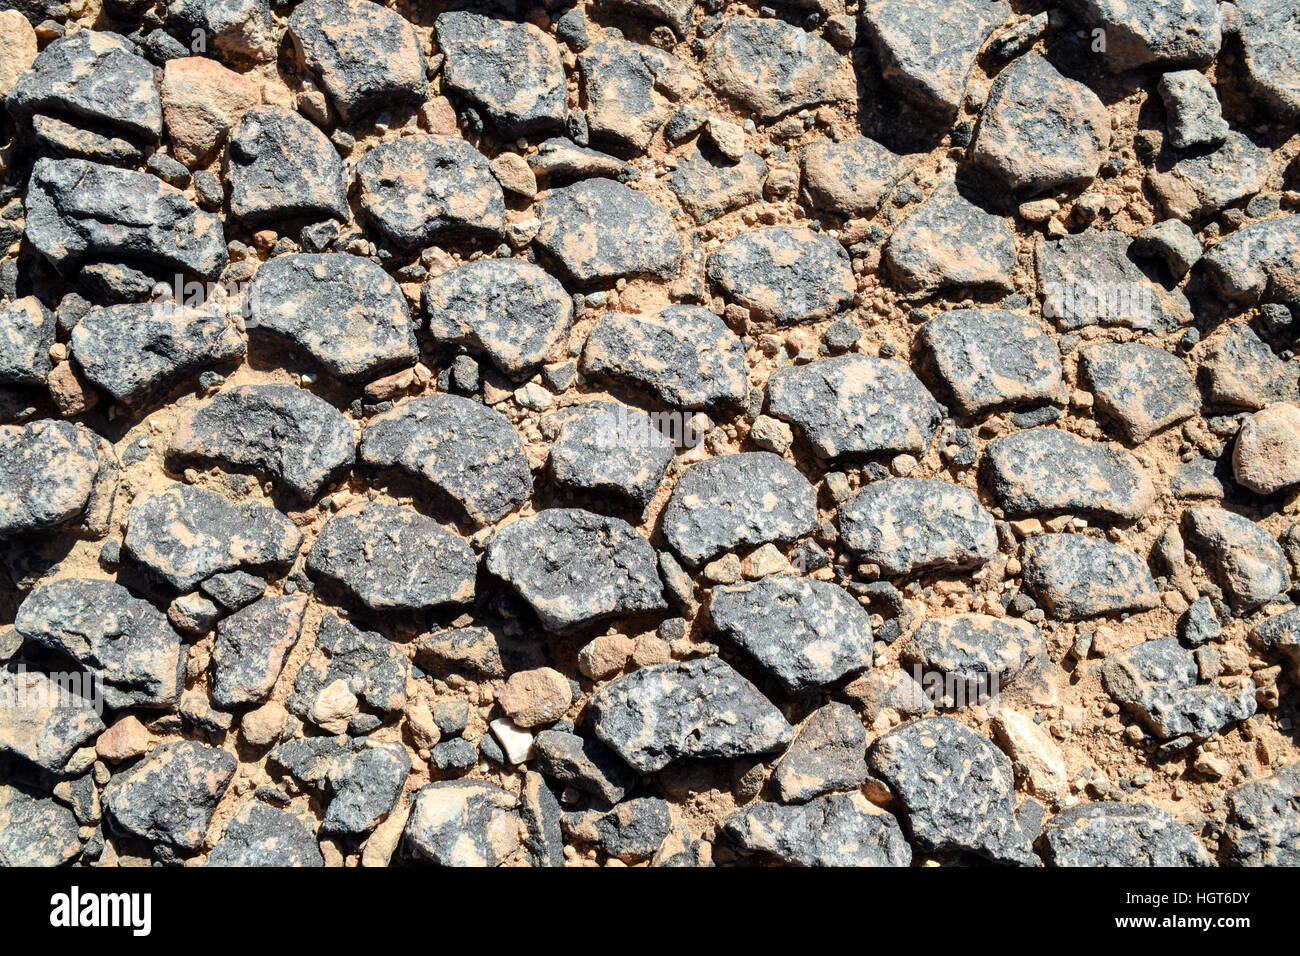 Natural stone floor texture for design or as background - Stock Image